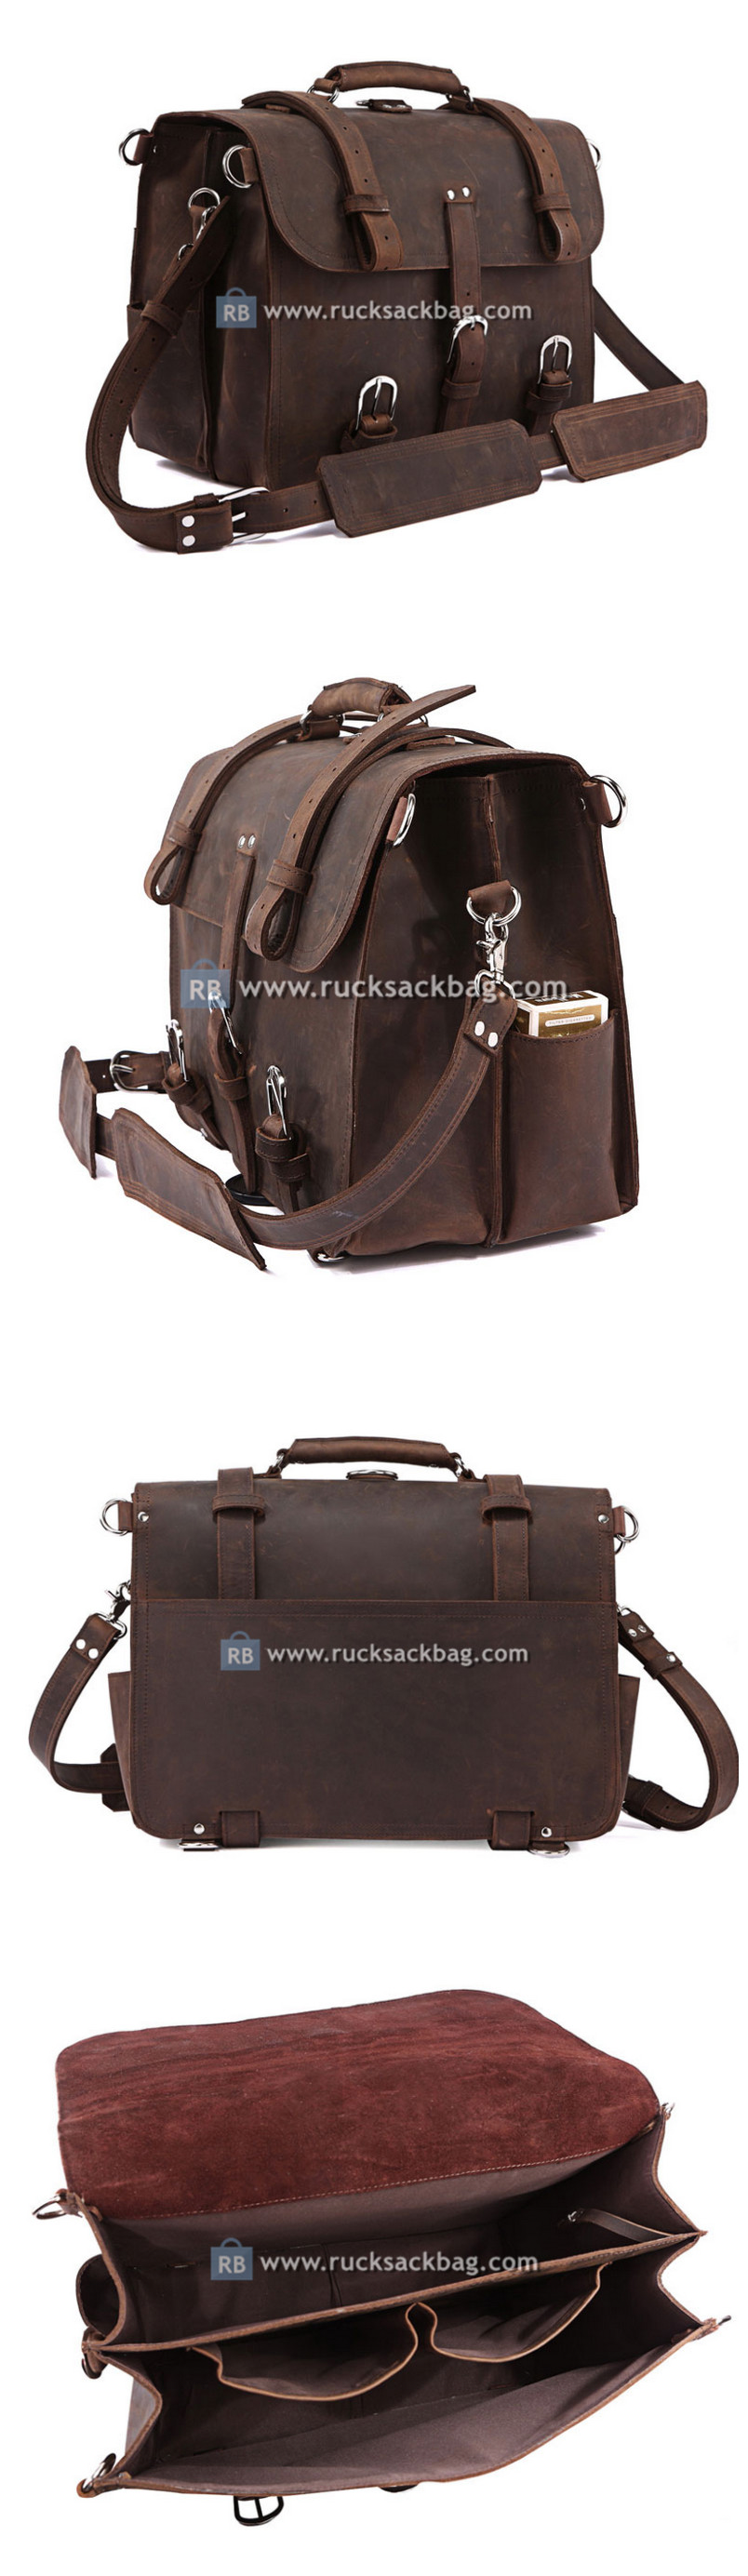 Large Capacity Backpack Leather Travel Luggage Bag